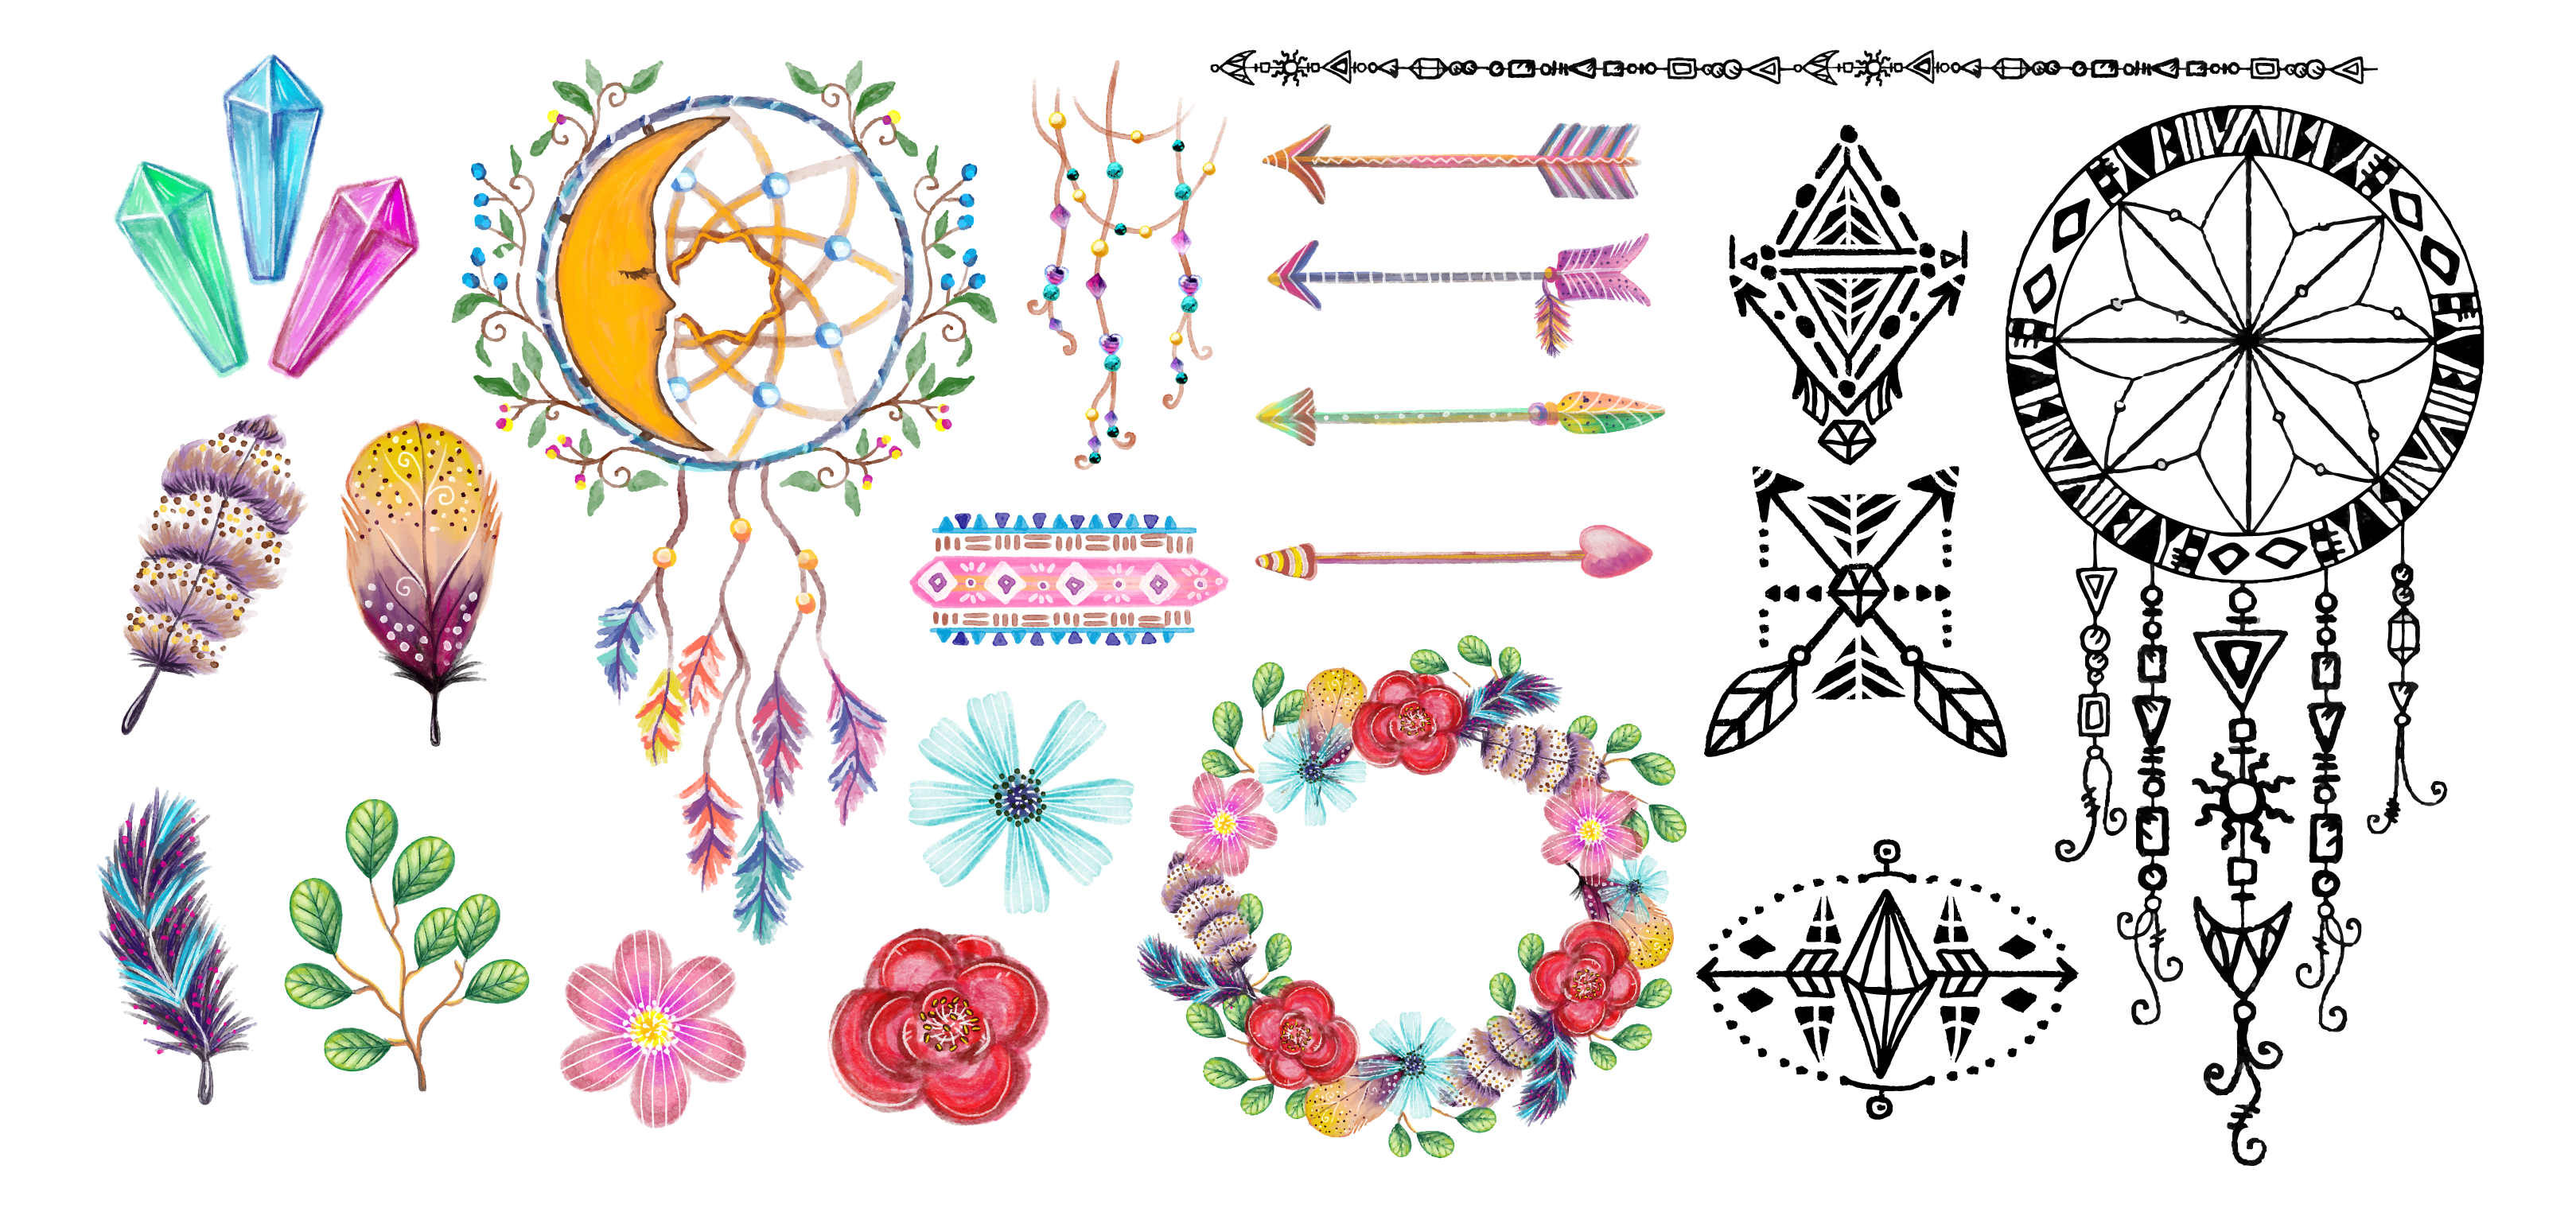 Free Download: Watercolor bohemian elements and illustrations